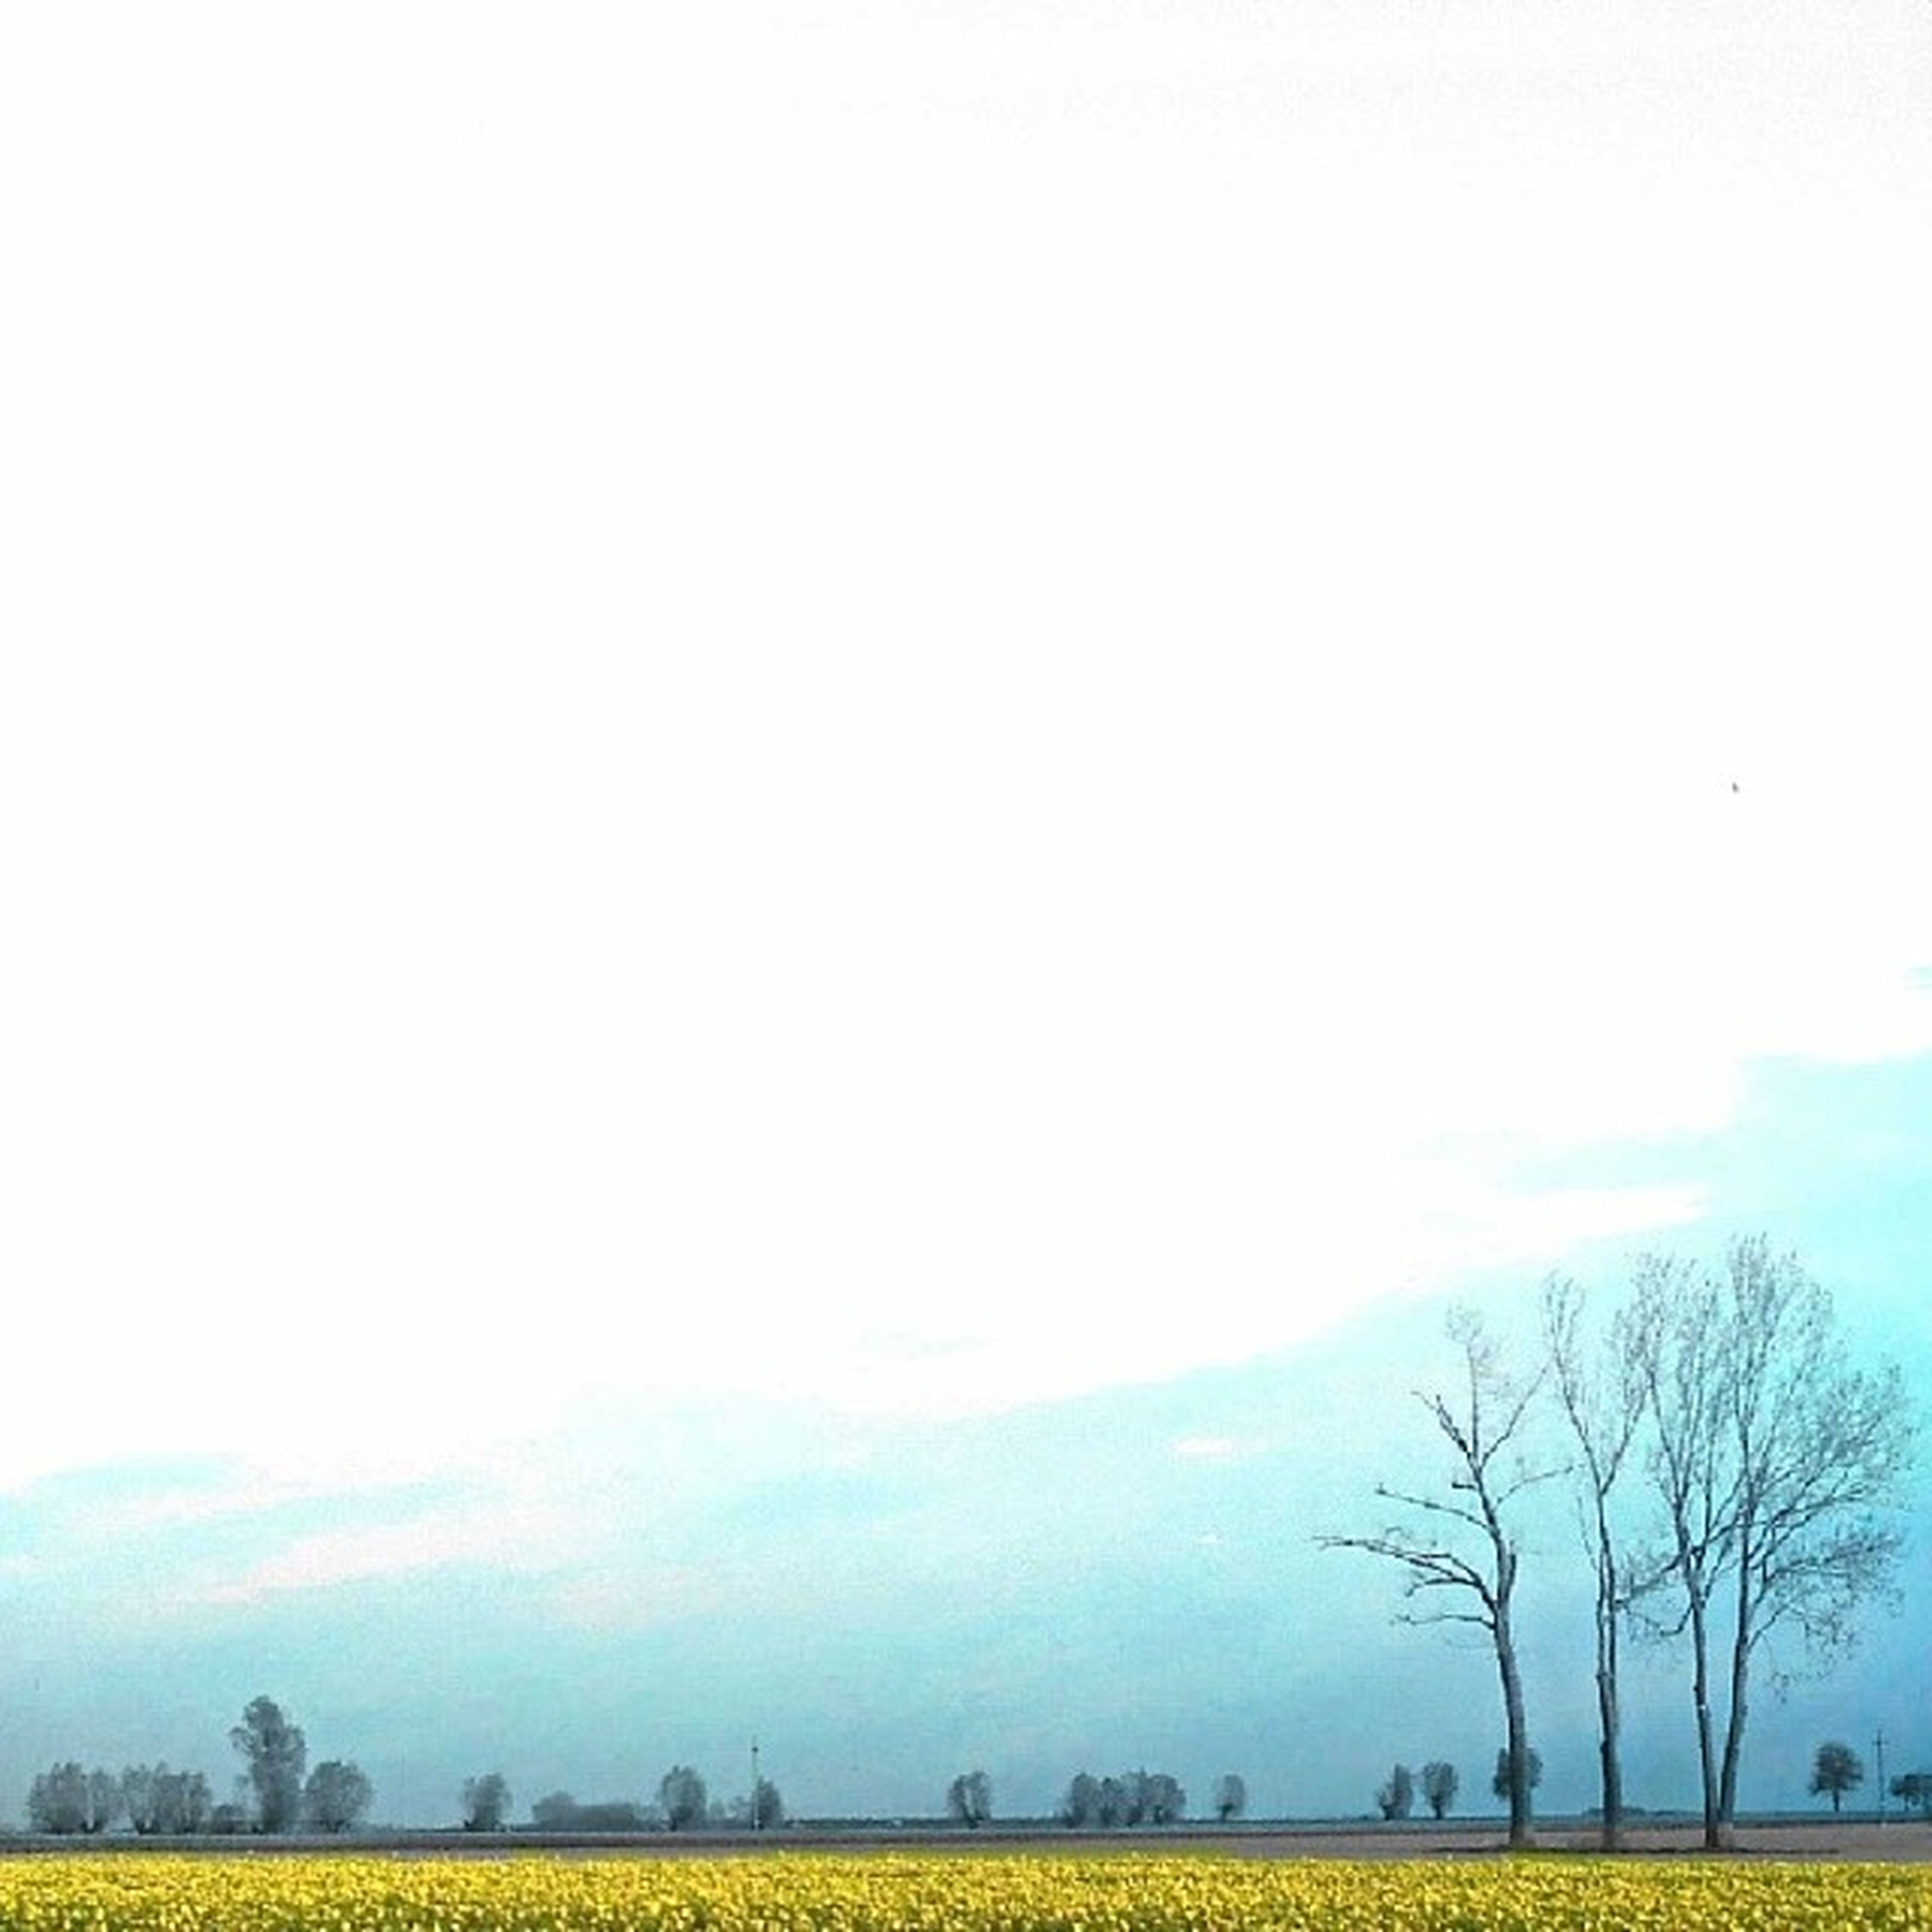 tree, field, landscape, bare tree, tranquil scene, tranquility, grass, sky, beauty in nature, scenics, nature, copy space, clear sky, growth, built structure, building exterior, outdoors, no people, day, architecture